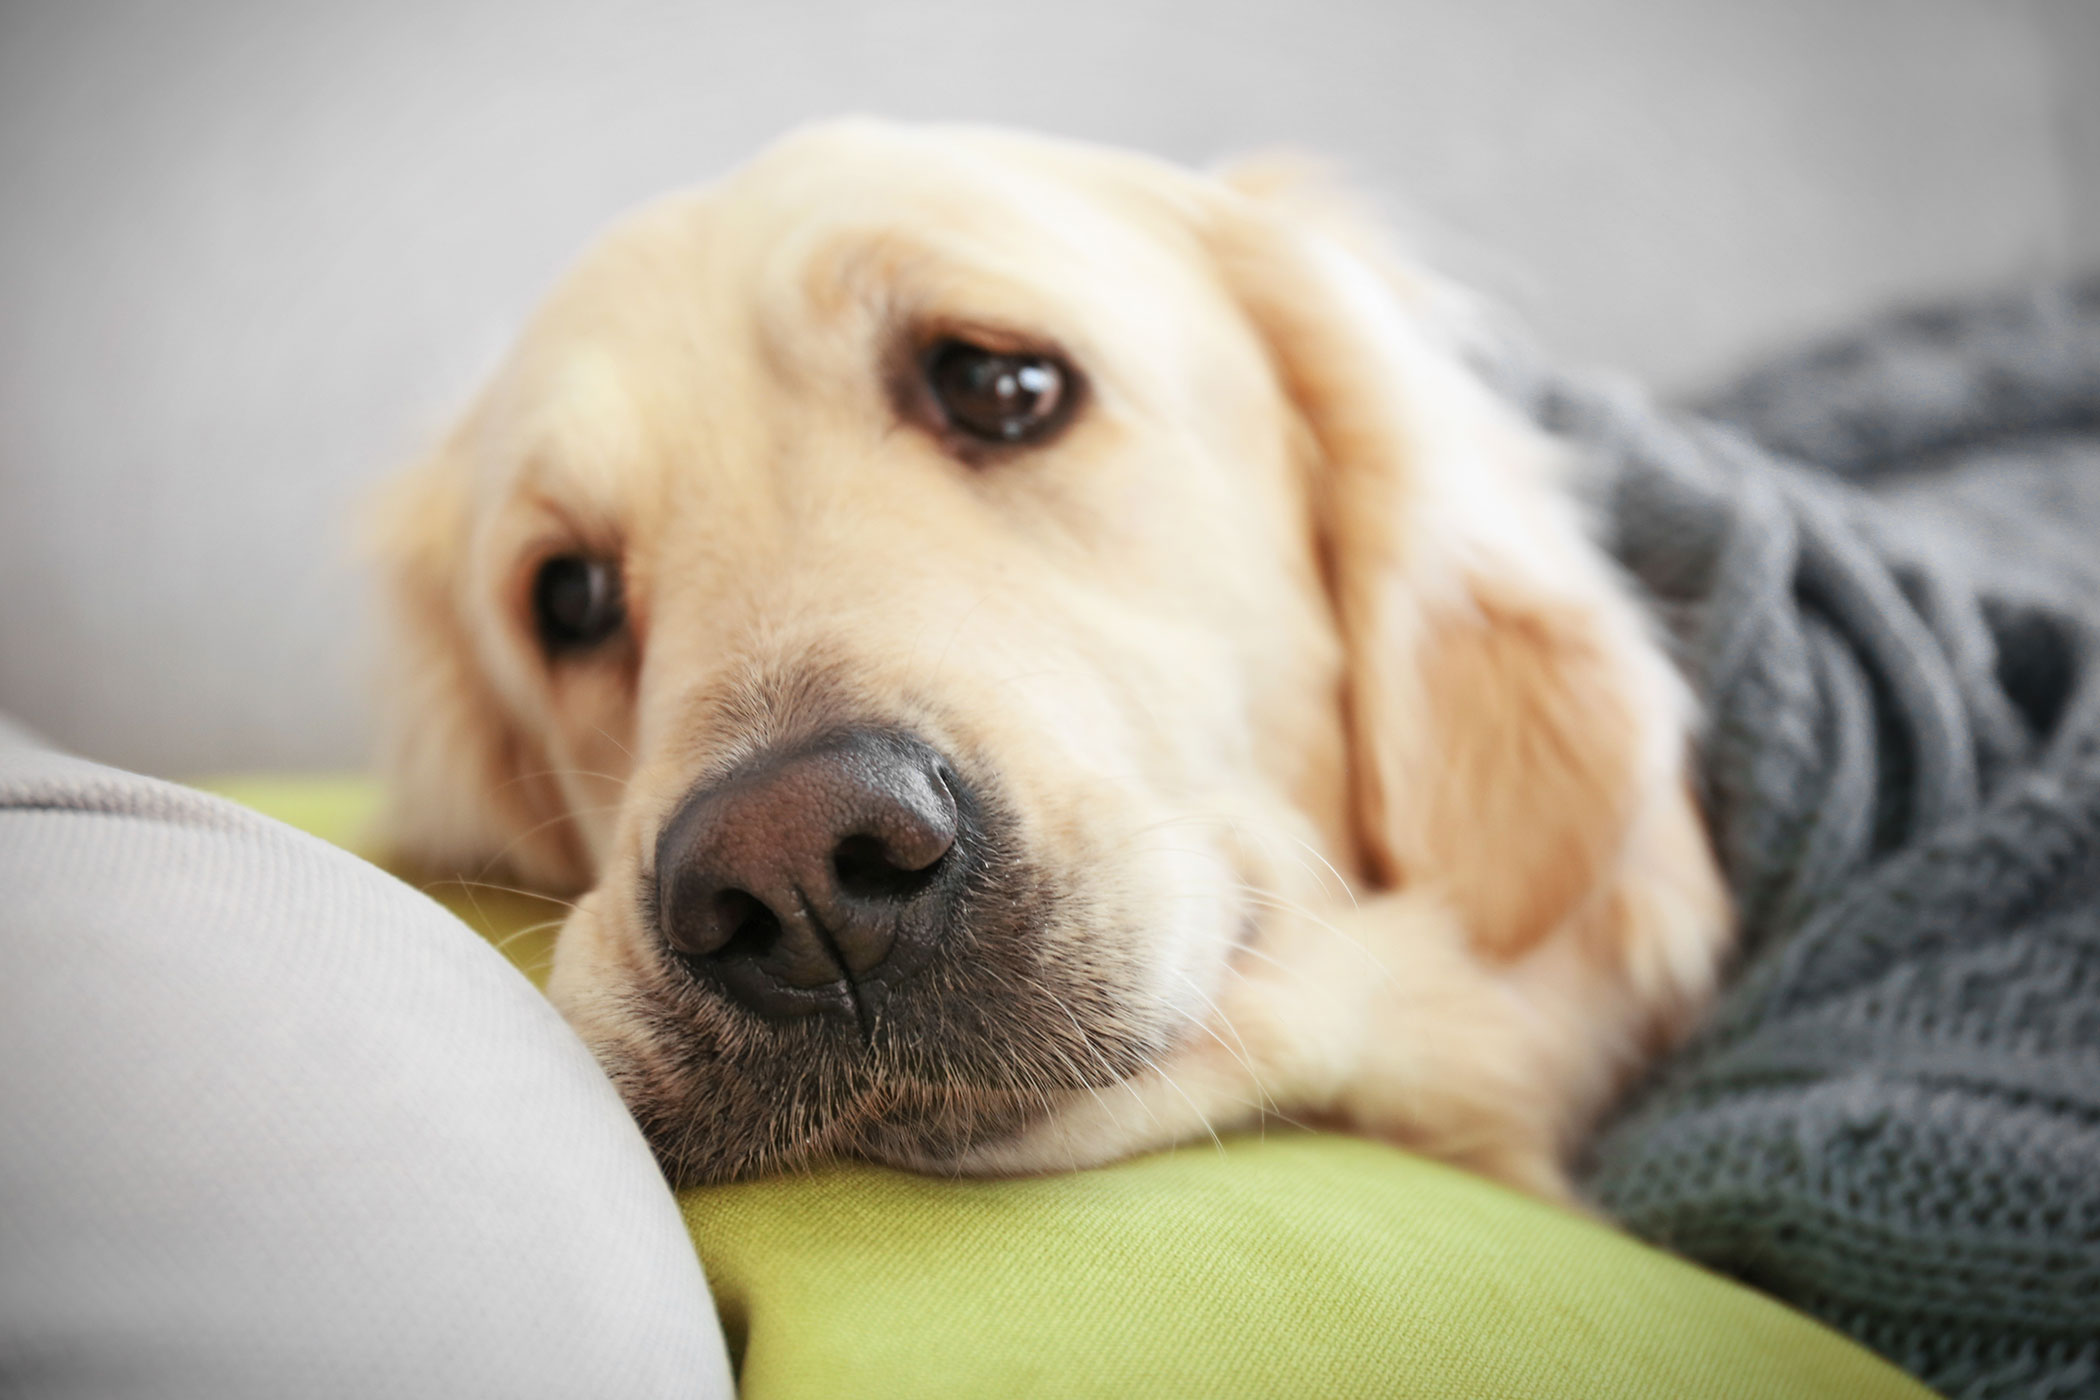 Parasitic Drug (Ivermectin) Poisoning in Dogs